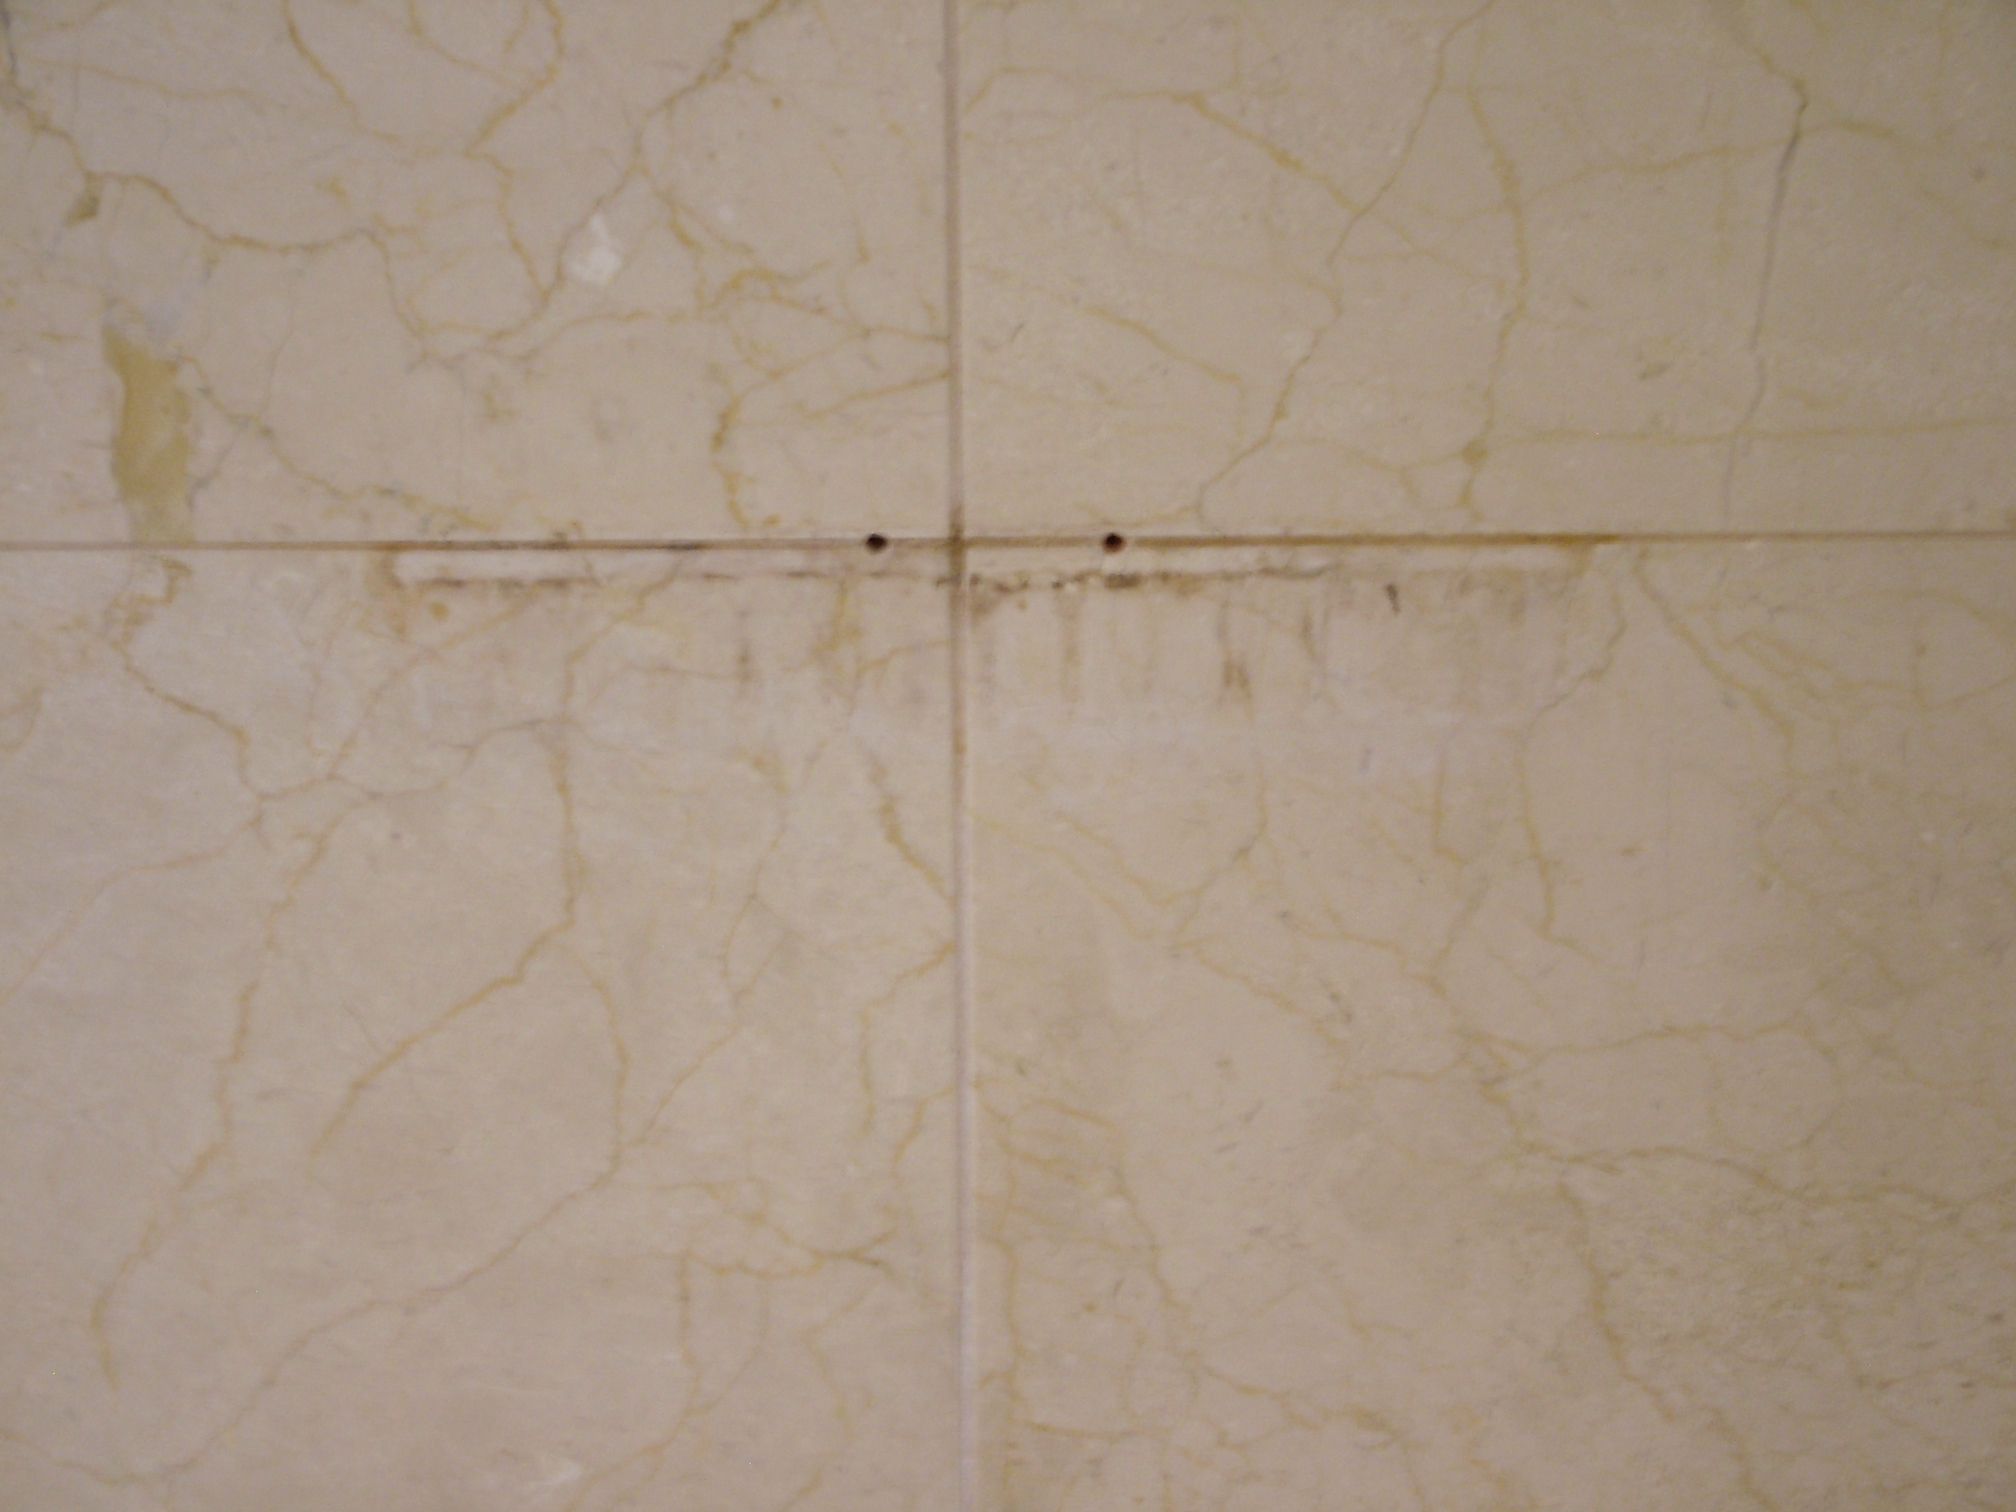 Lustre Ltd Specialists In Marble Cleaning Polishing And Tile Grout Restoration Repair Leaky Shower Wall Floor Tiles